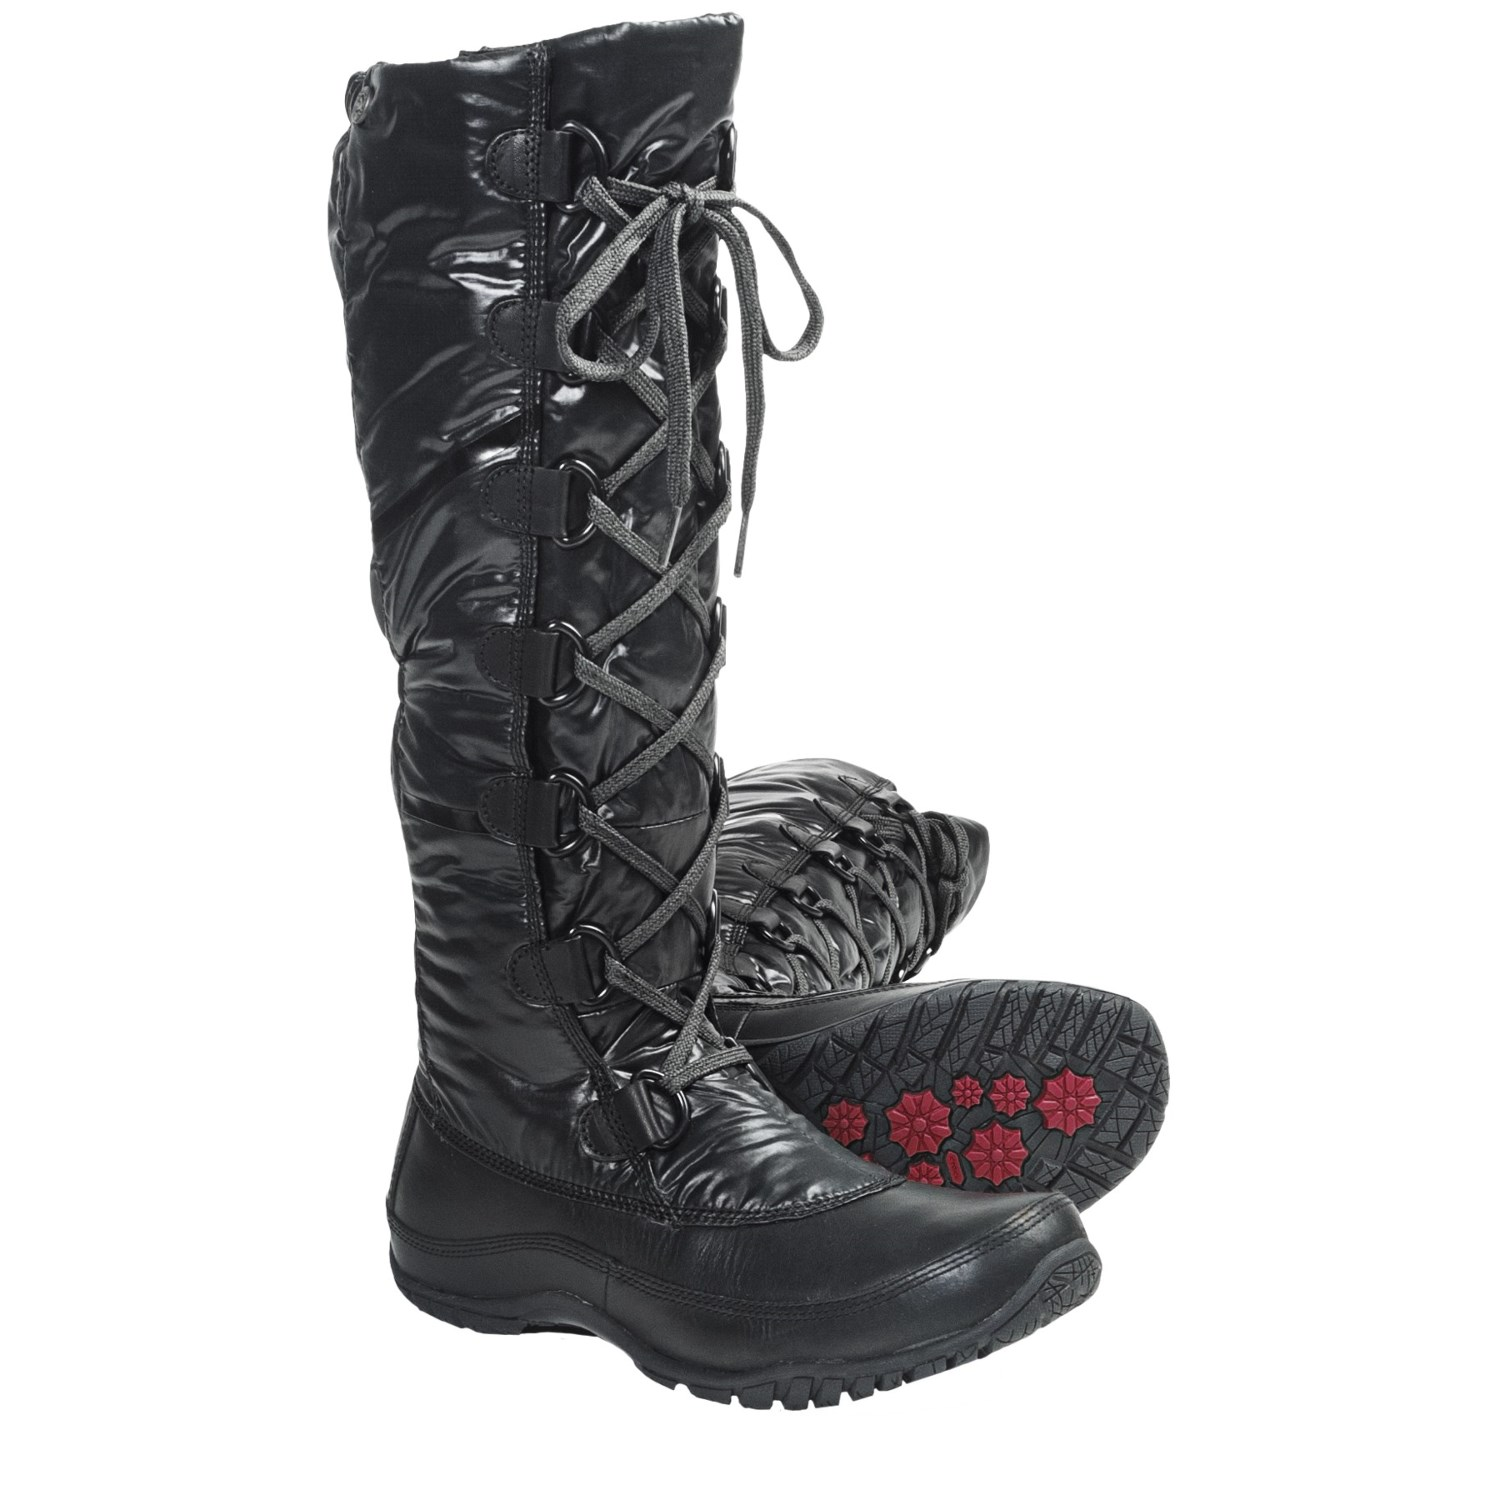 The North Face Anna Purna Tall Lace Winter Boots